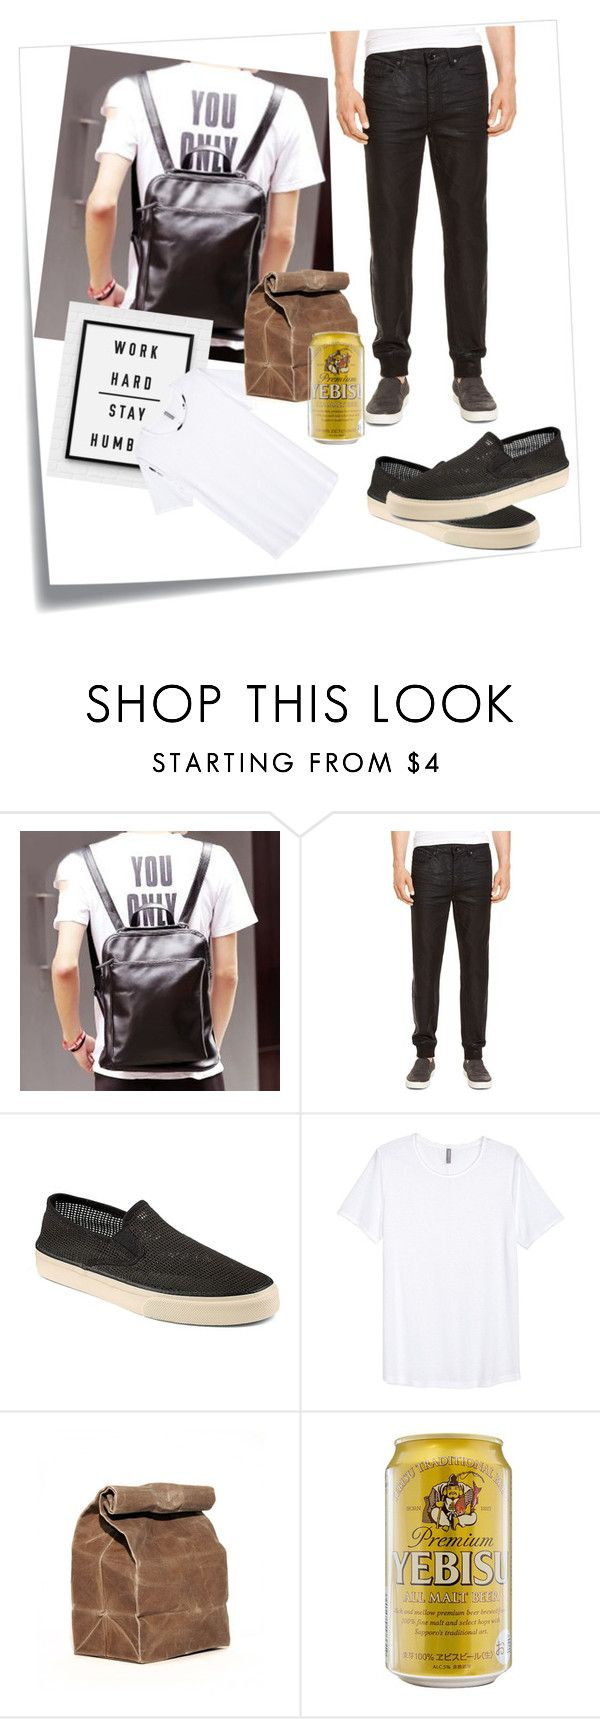 """""""Creative Ways to Save Money"""" by widegren-rosa on Polyvore featuring Post-It, BagBuzz, Kenneth Cole, Sperry Top-Sider, mens, men, men's wear, mens wear, male and mens clothing"""